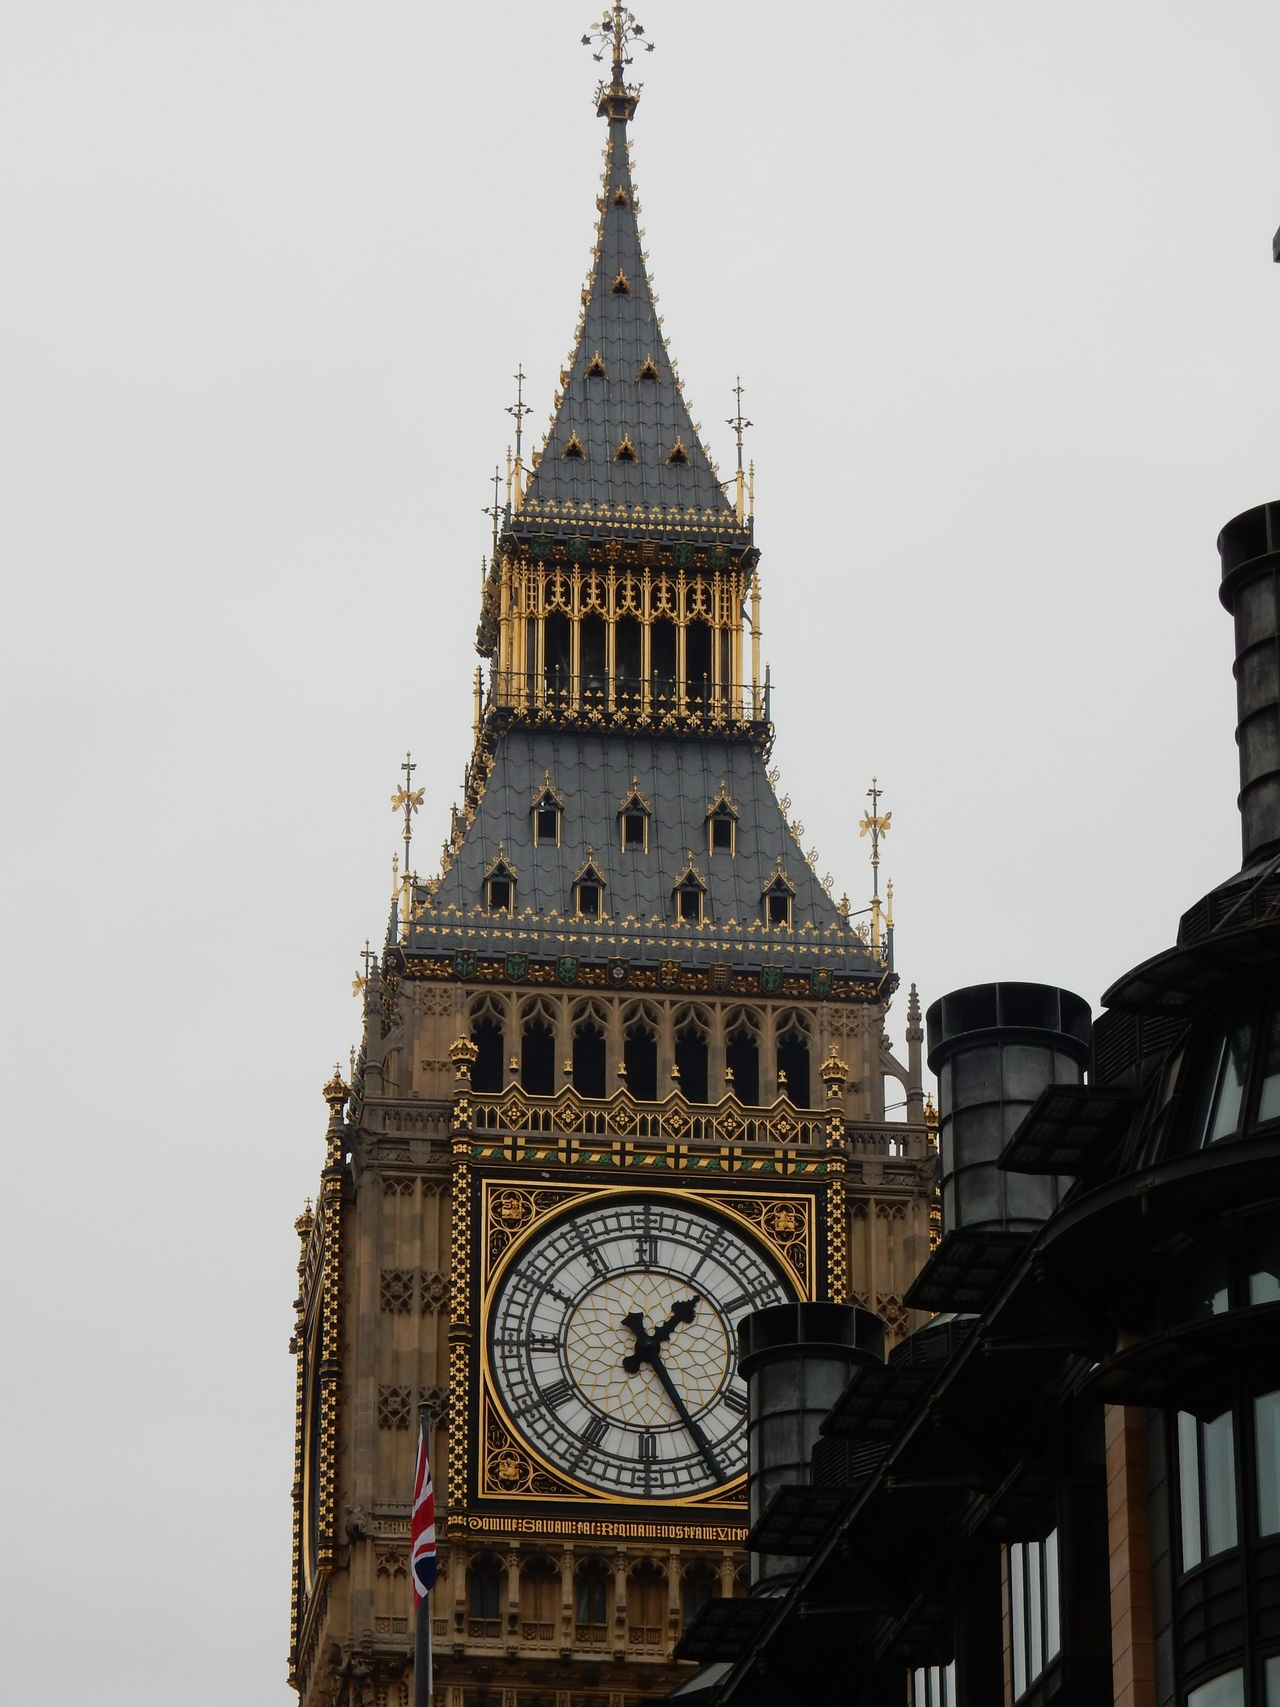 Westminster London Government Architecture Big Ben North Tower Elizabethtower Gold Old Fancy Intricate Designs